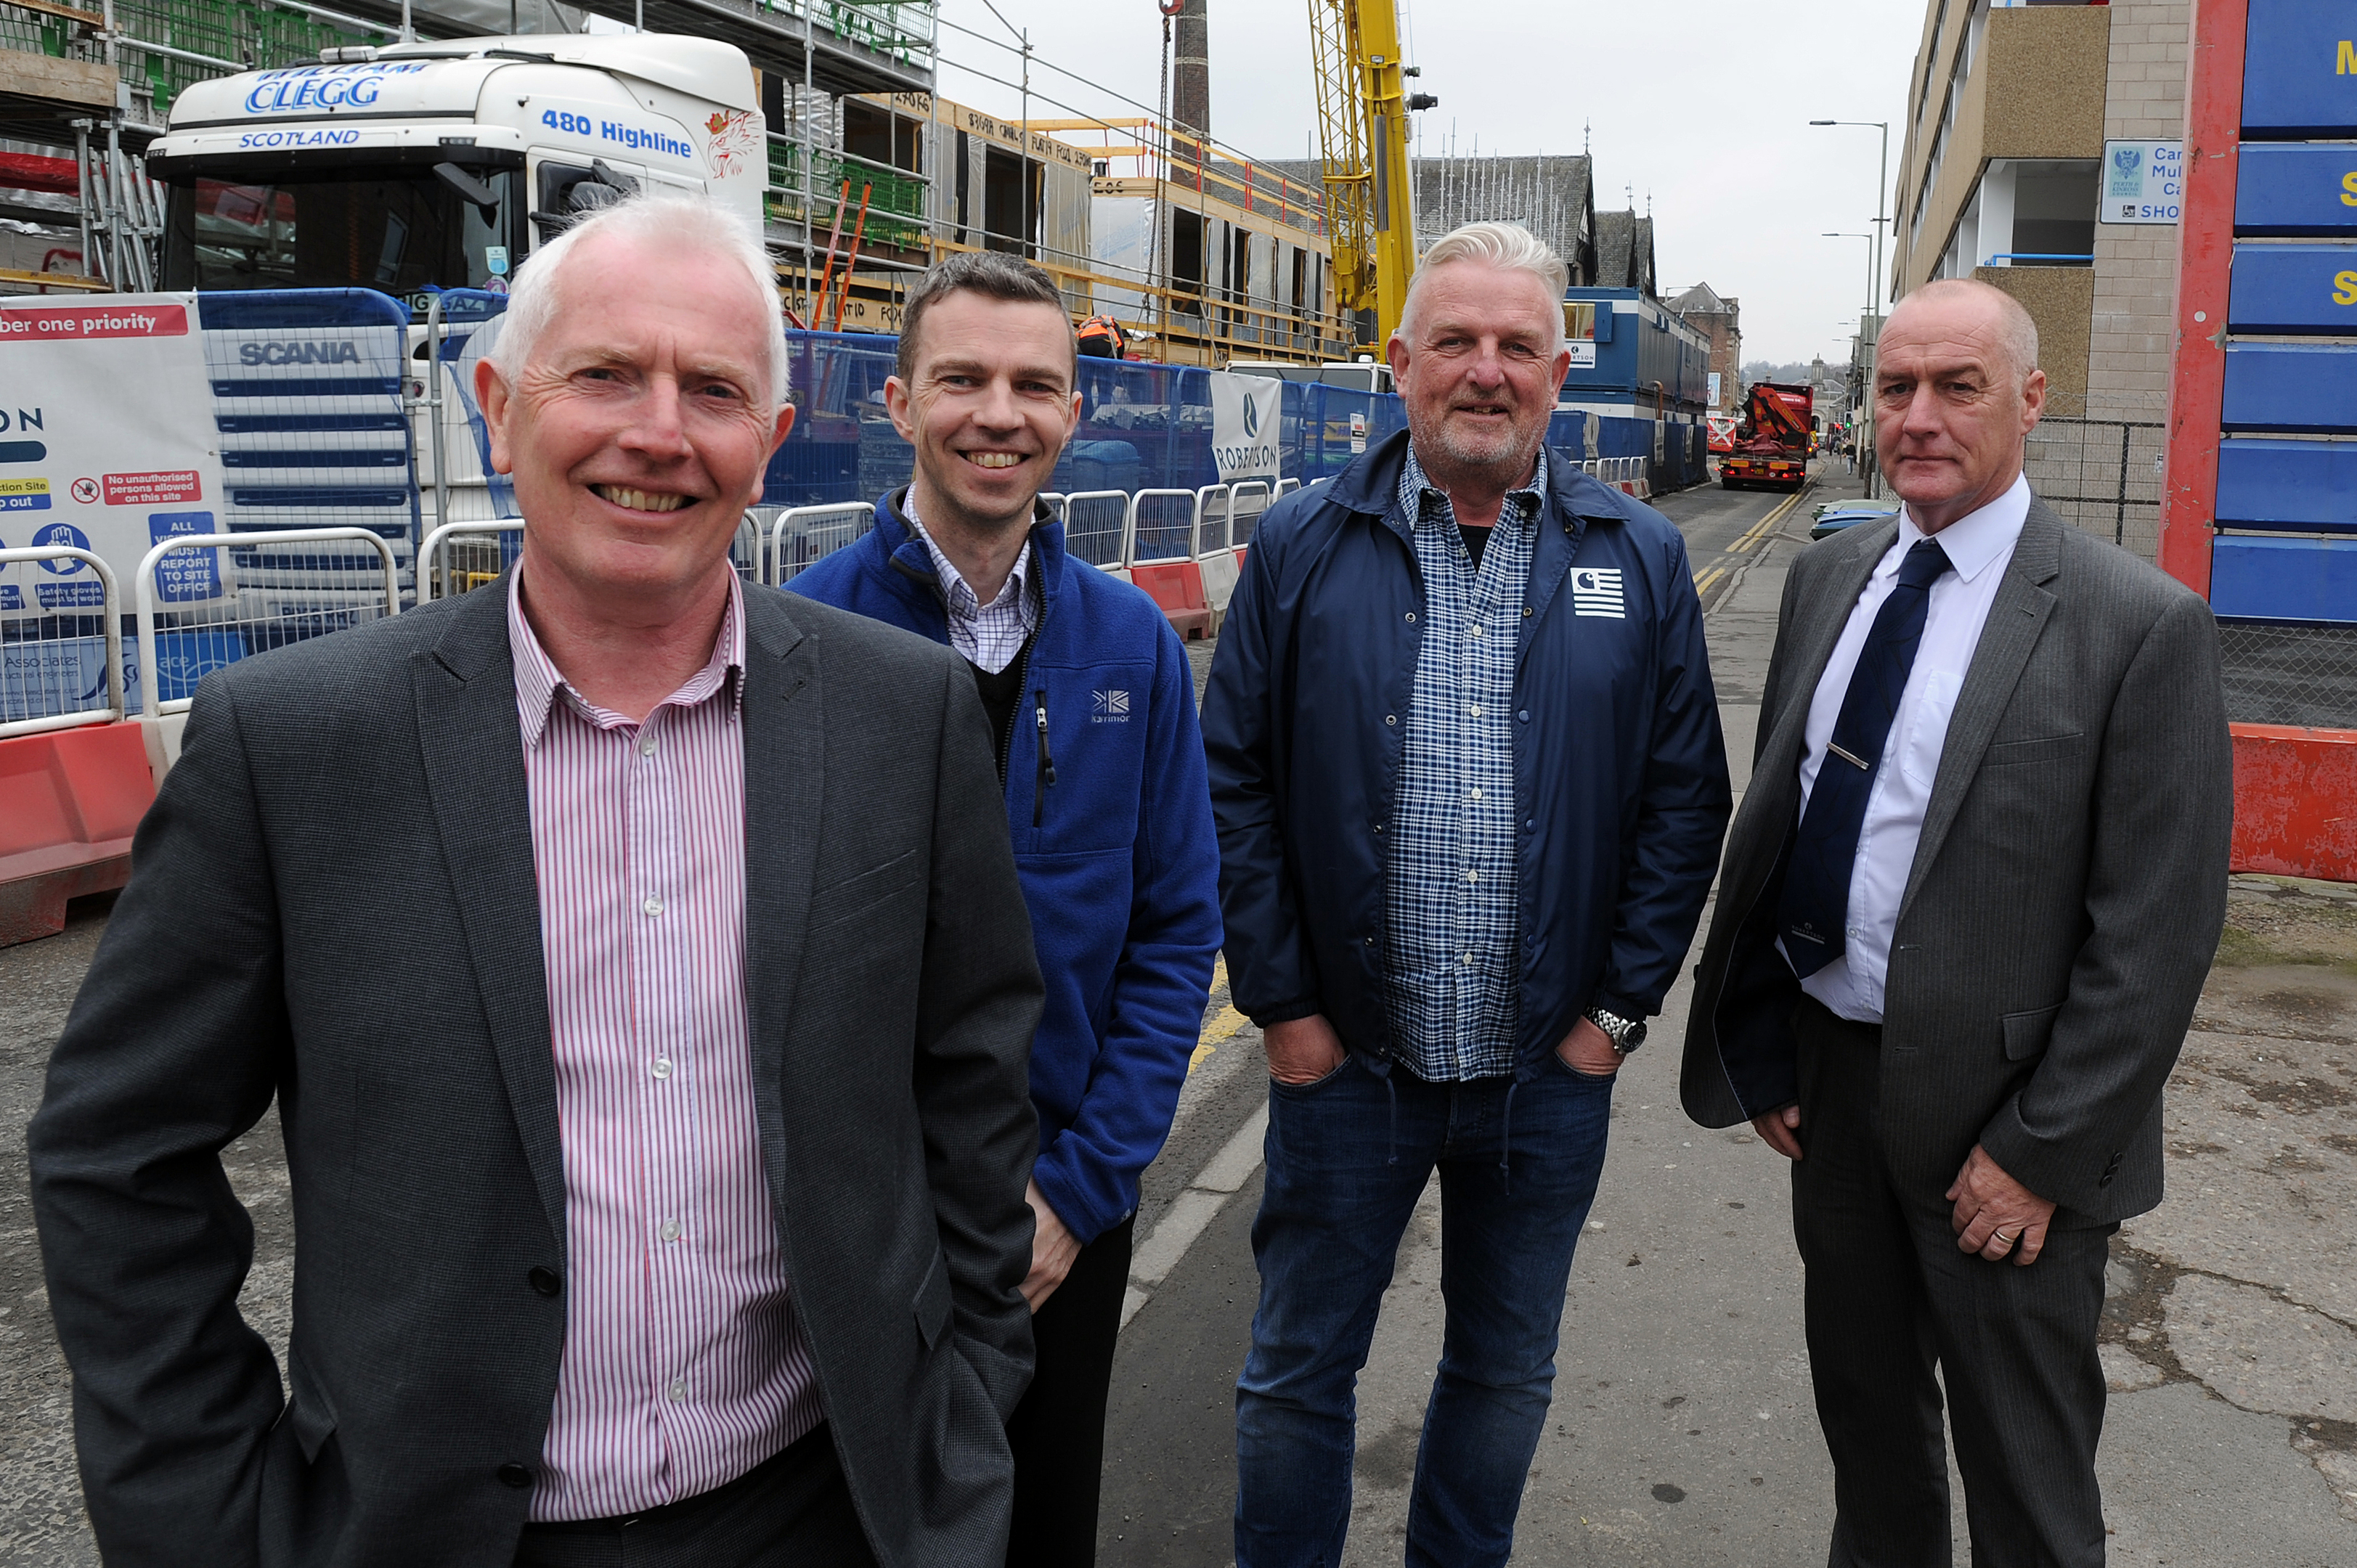 Work on the  housing development on Canal Street, Perth has re-started. From left,  Hamish Bell (quantity surveyor), Barry Lees (Fairfield Housing), Grant Ager (chief executive Fairfield Housing) and Richard Law (Robertson Partnership Homes).